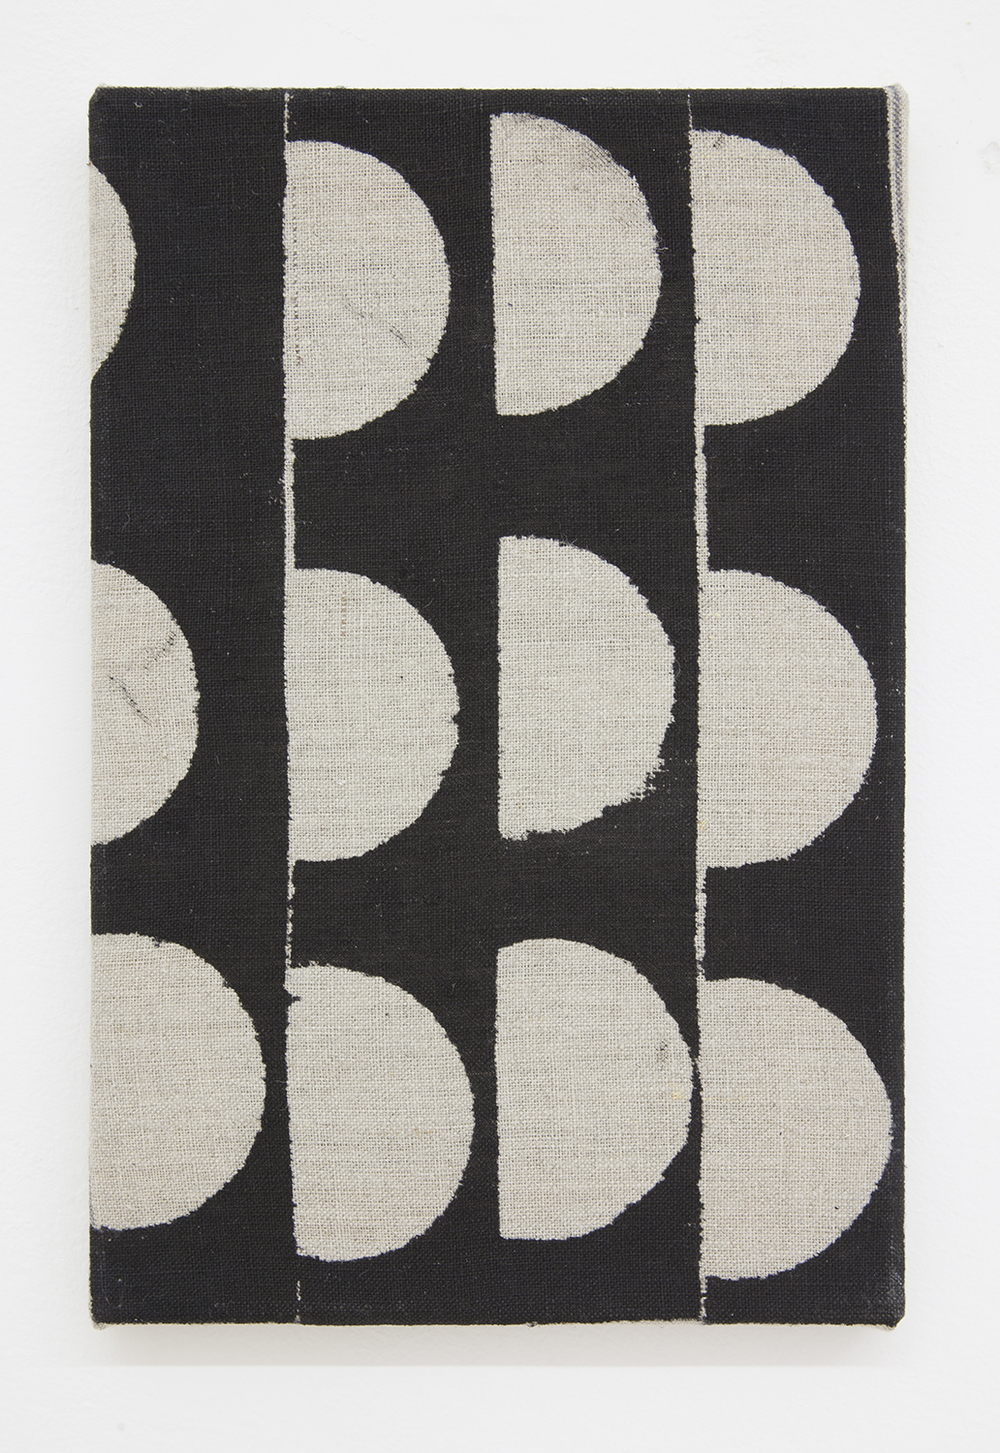 AUGUSTUS THOMPSON Untitled (Bean Can 4), 2013 Ink on linen 12 x 8 inches